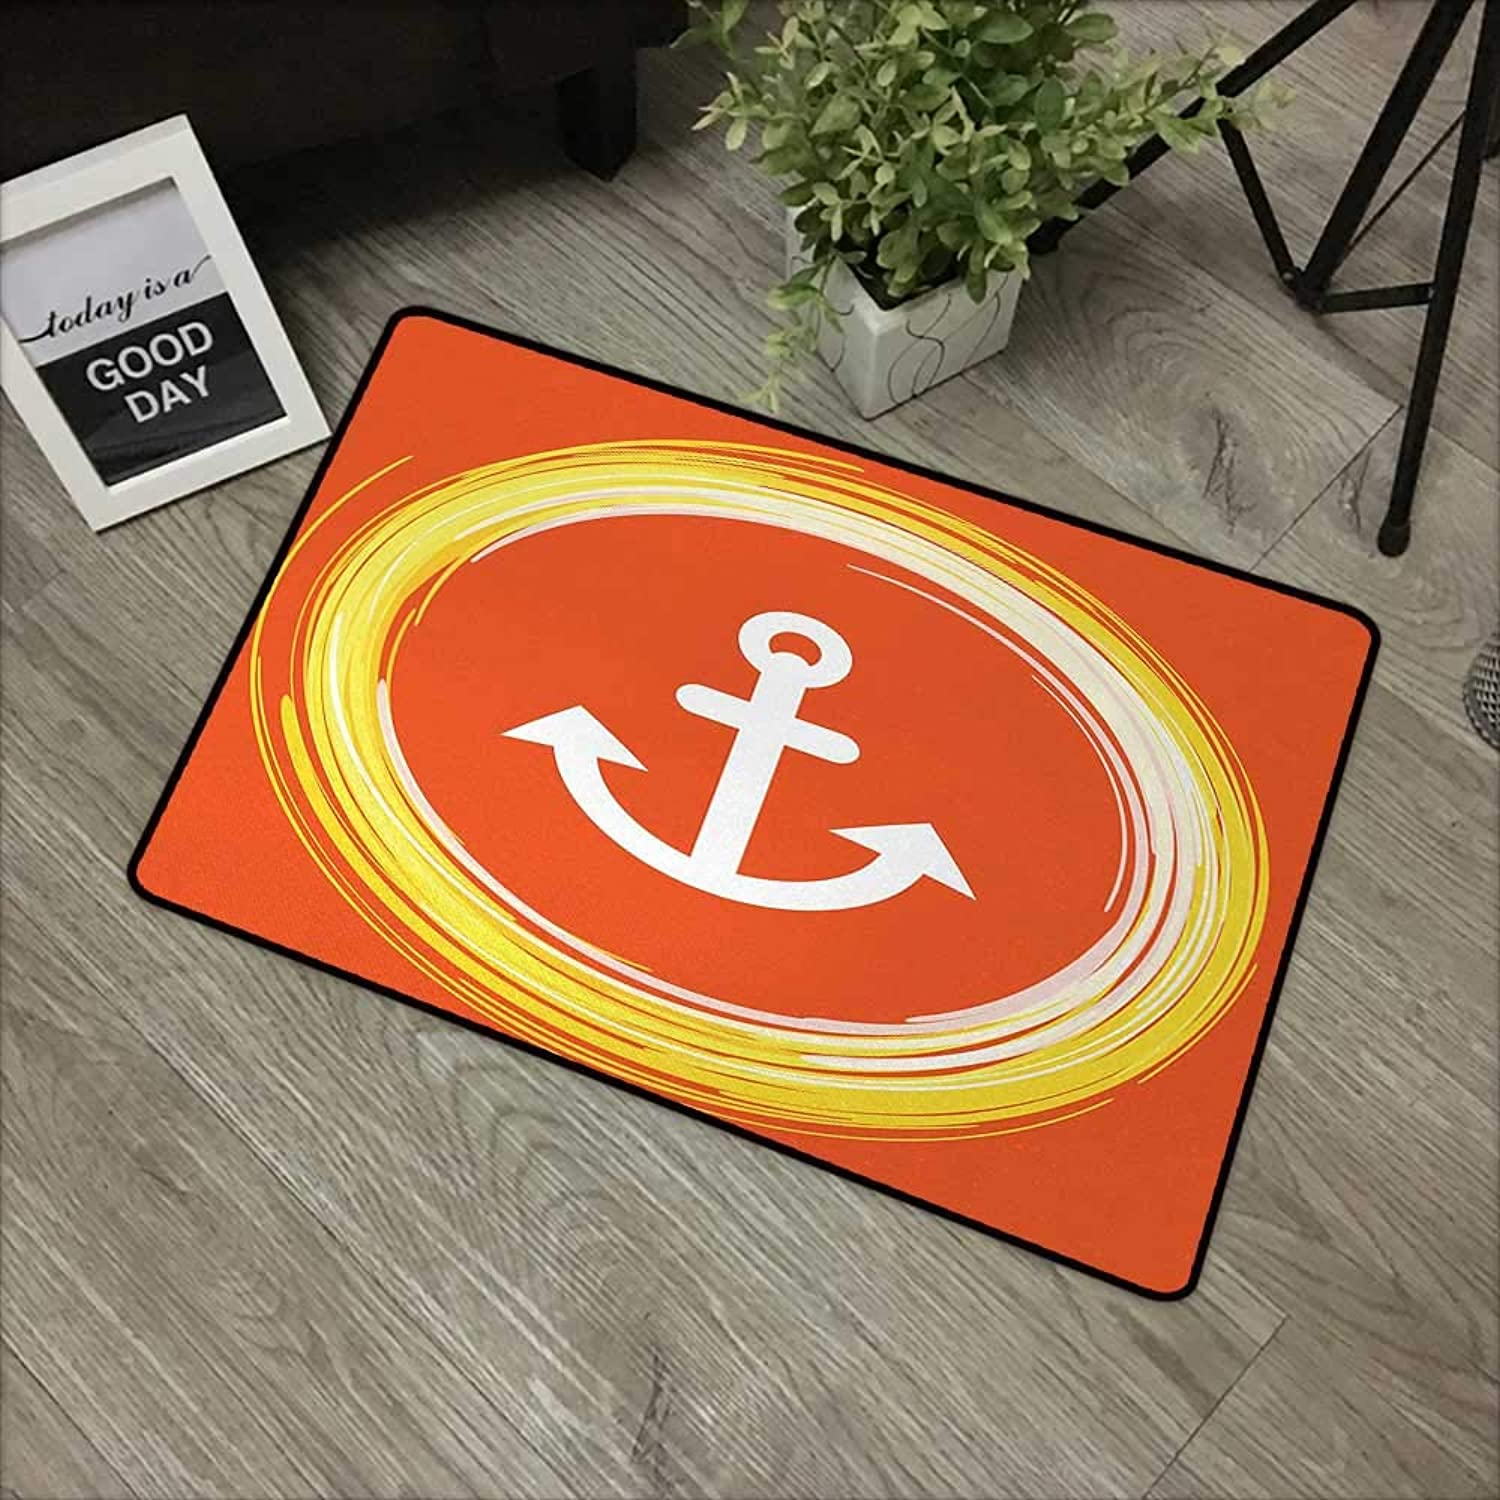 Bathroom Door mat W35 x L59 INCH Anchor,Anchor Image in a Circle Round Enlightened Drawing Controlling The Seabed Print,orange Yellow Easy to Clean, Easy to fold,Non-Slip Door Mat Carpet